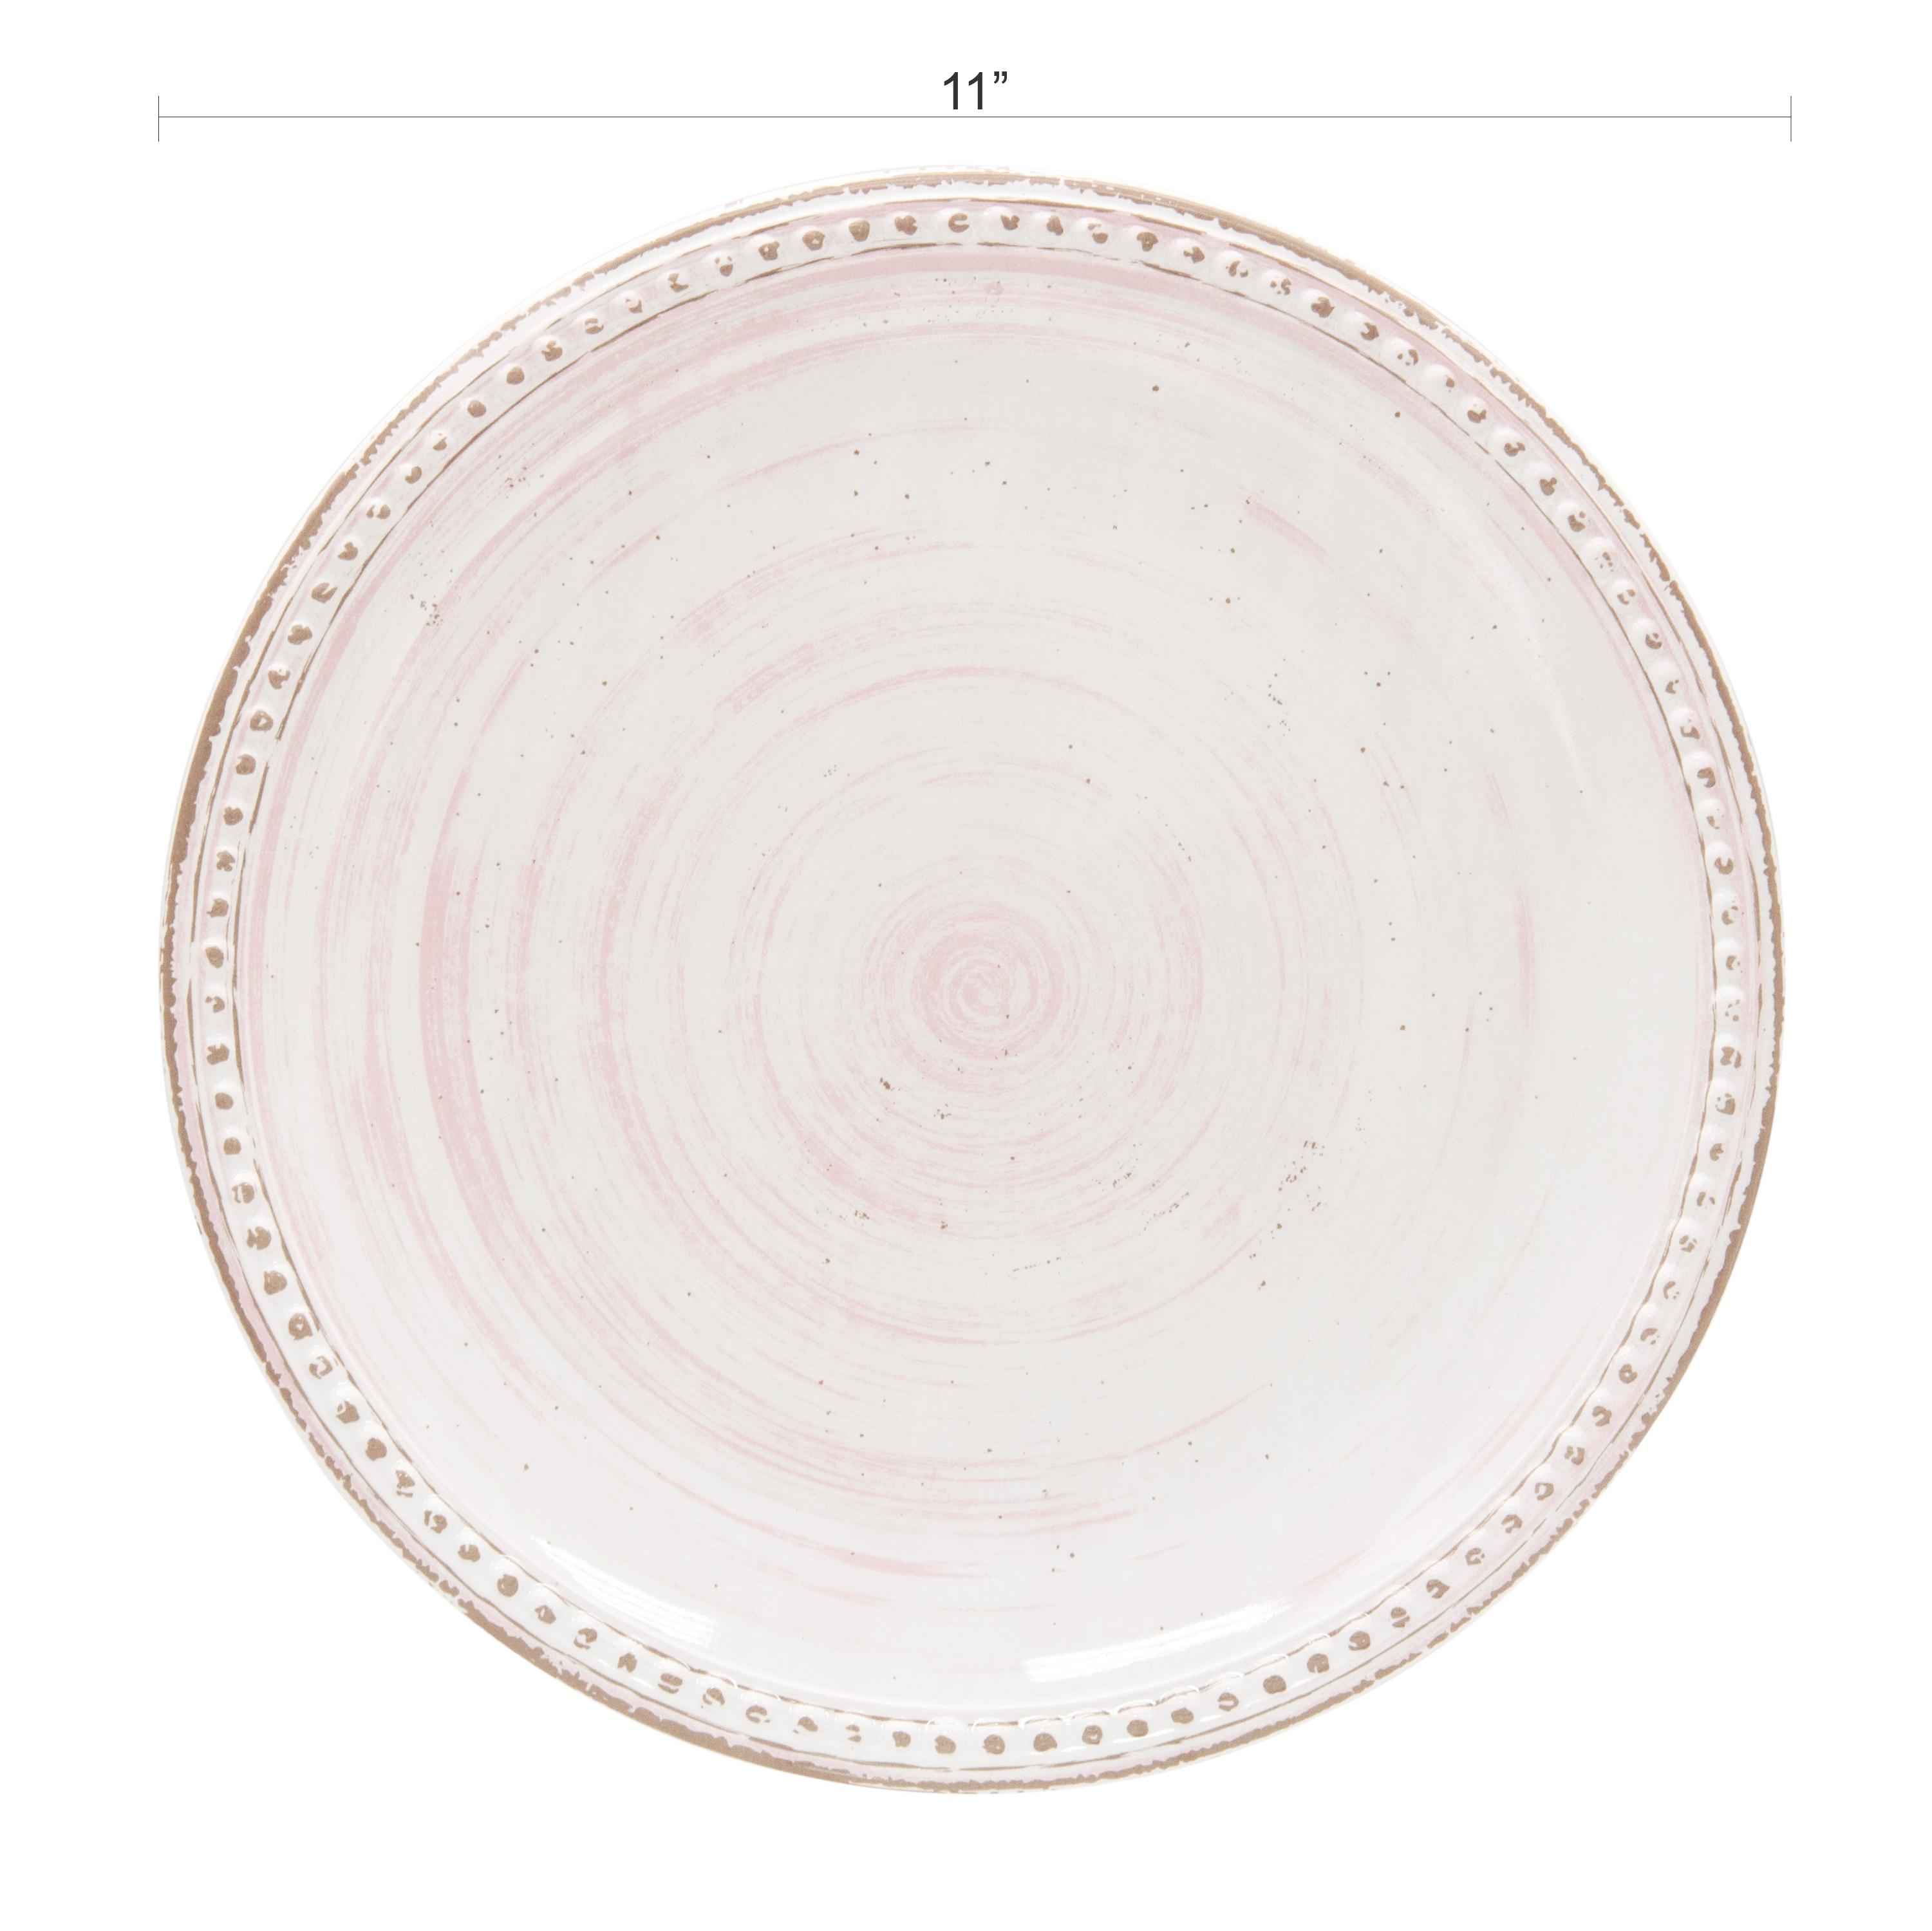 French Country Plate & Bowl Sets, Pink, 12-piece set slideshow image 6